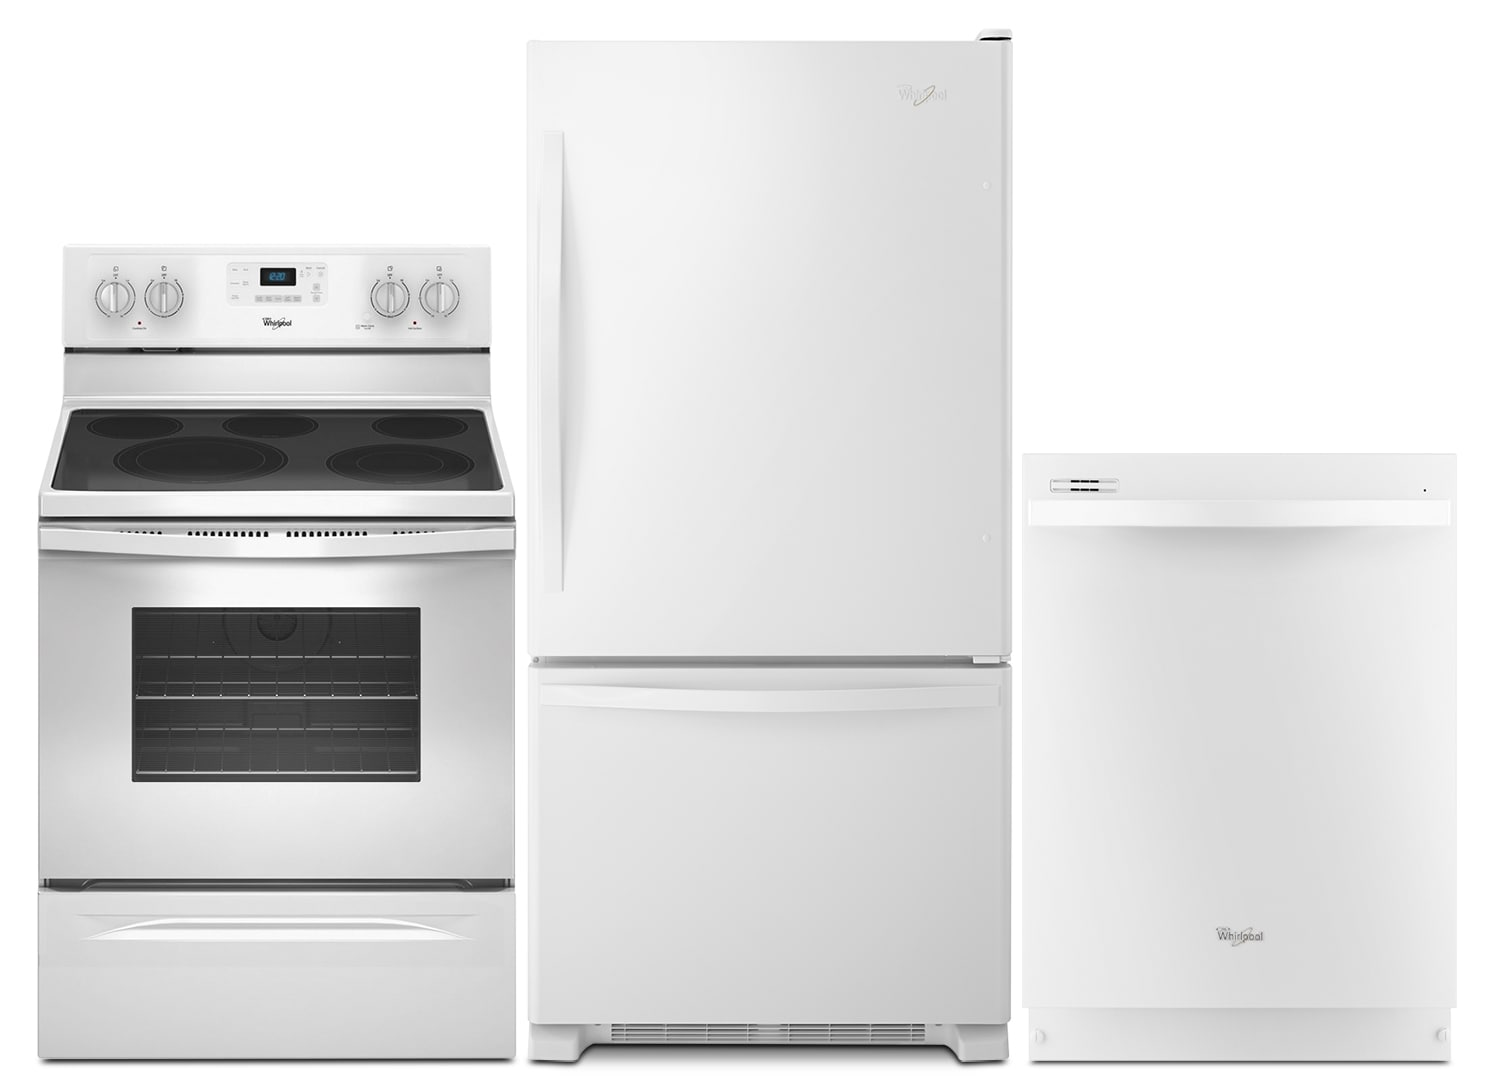 Cooking Products - Whirlpool 18.5 Cu. Ft. Refrigerator, Electric Convection Range and Built-In Dishwasher - White